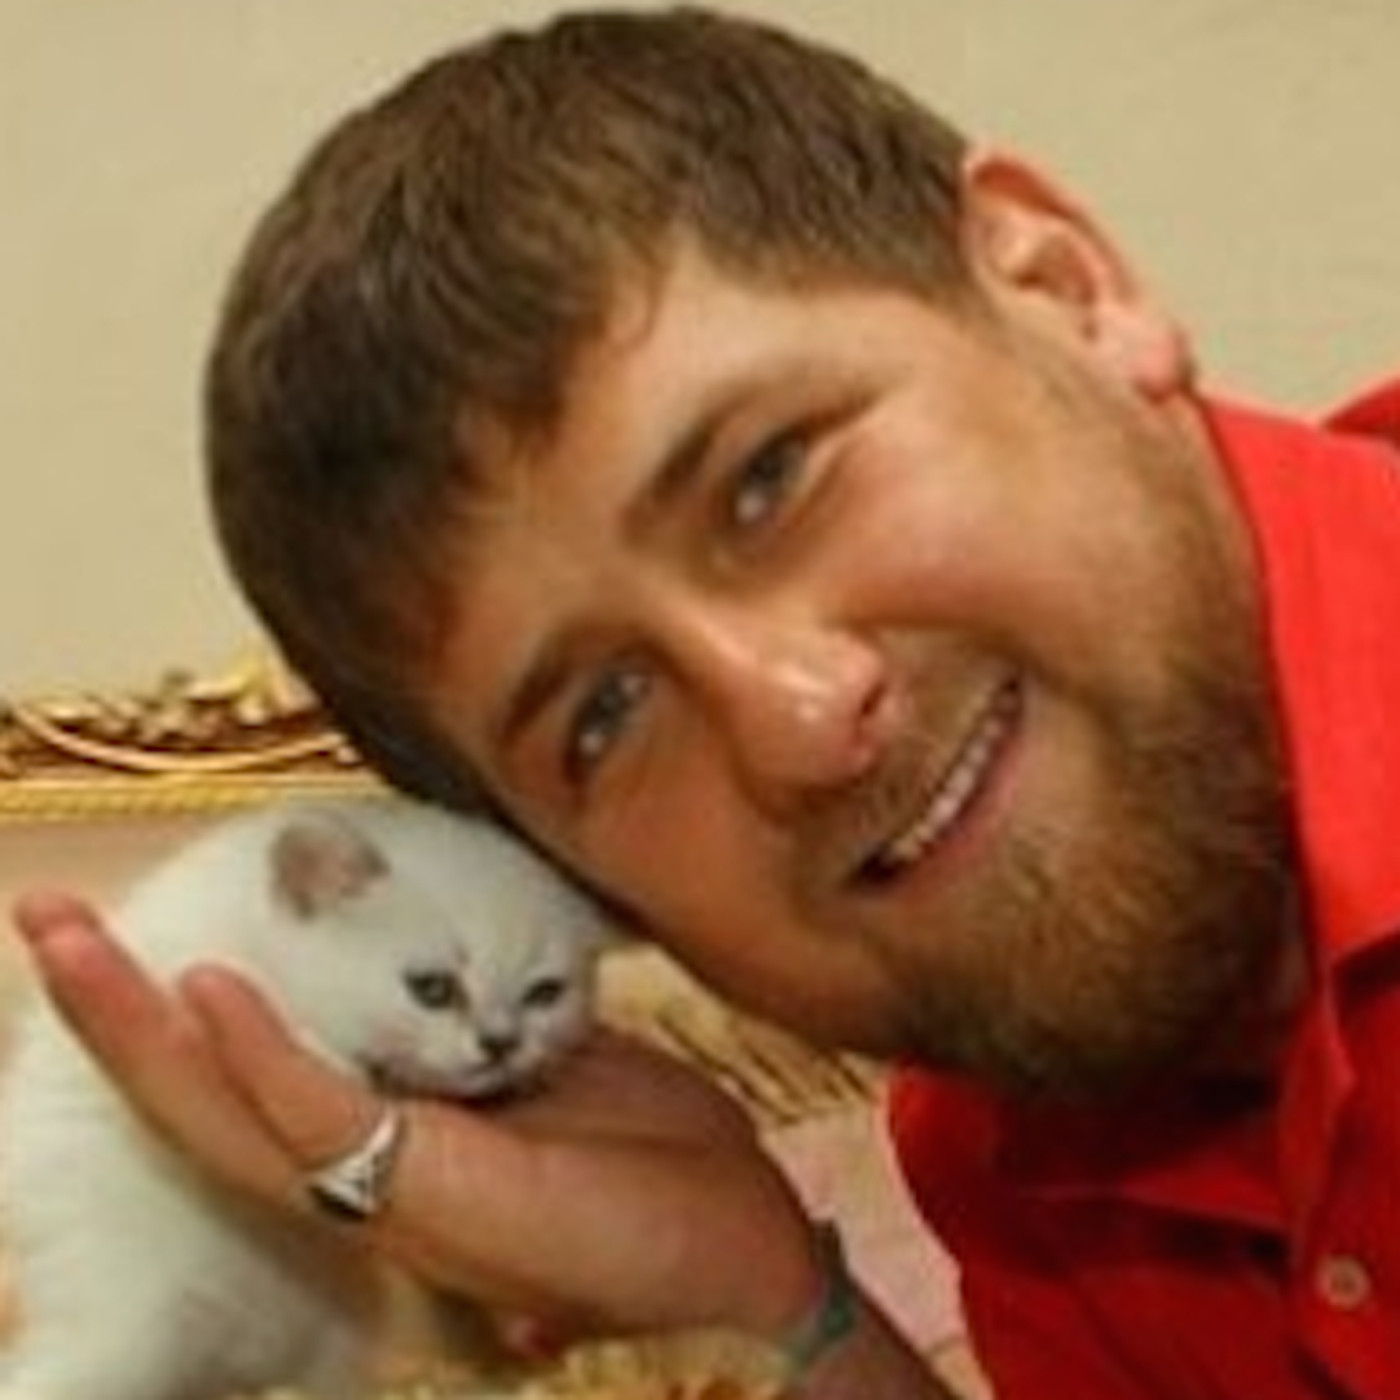 Chechnya S Kitten Hugging Putin Loving Dictator Explained In 19 Bizarre Instagrams Vox